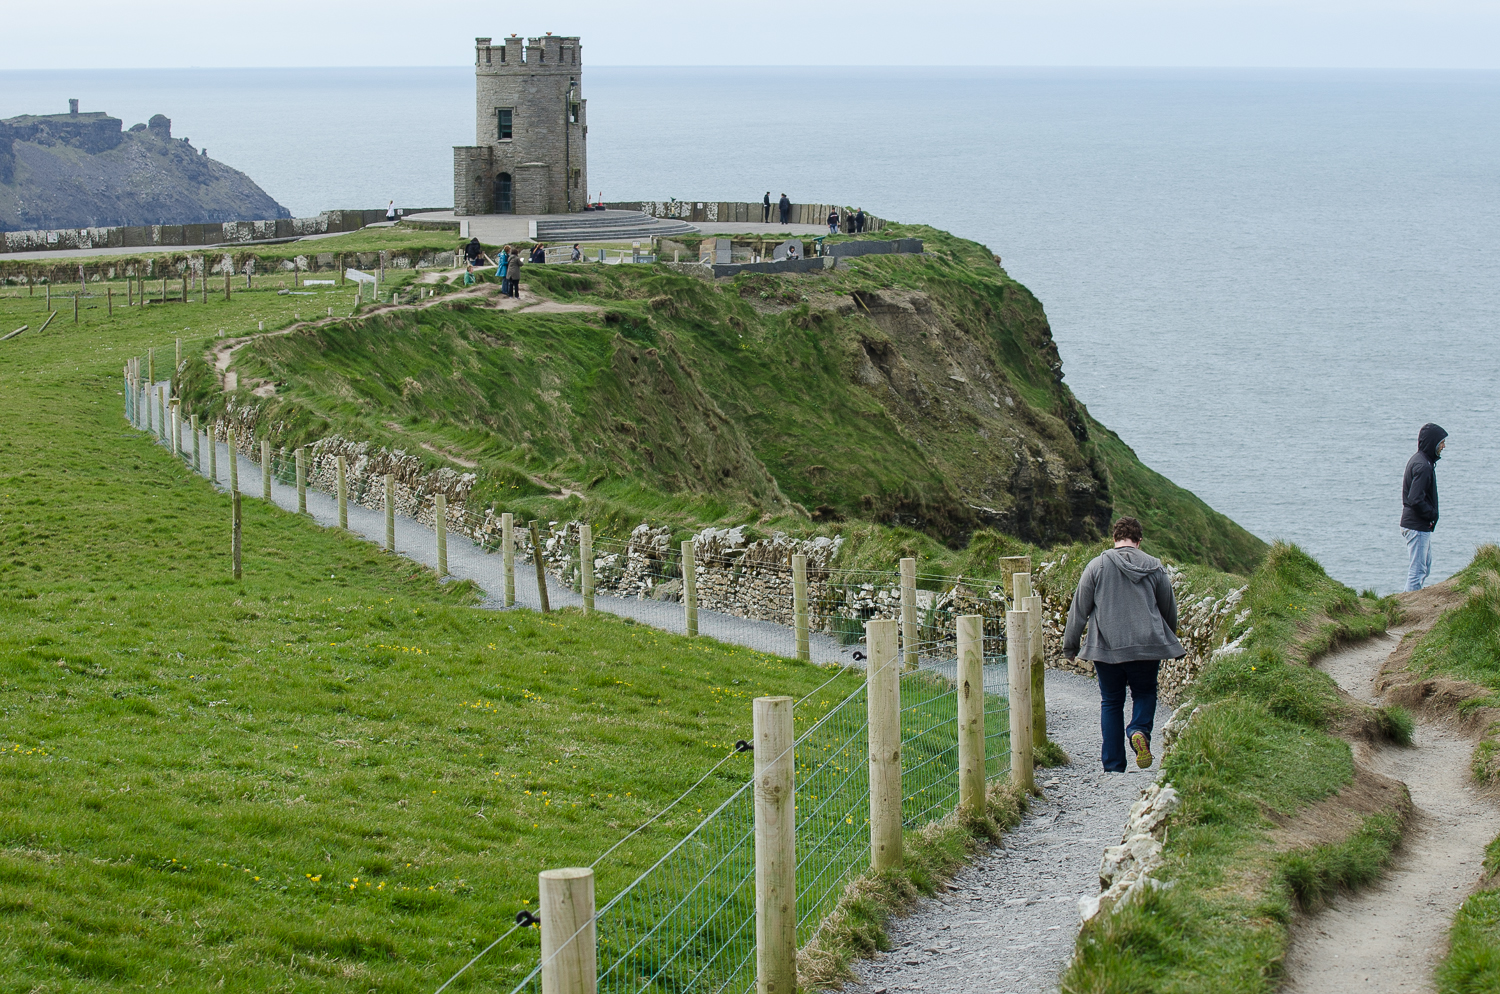 One of the best things about the new walk, is that you don't have to pay 6 euros per person to see the Cliffs of Moher!